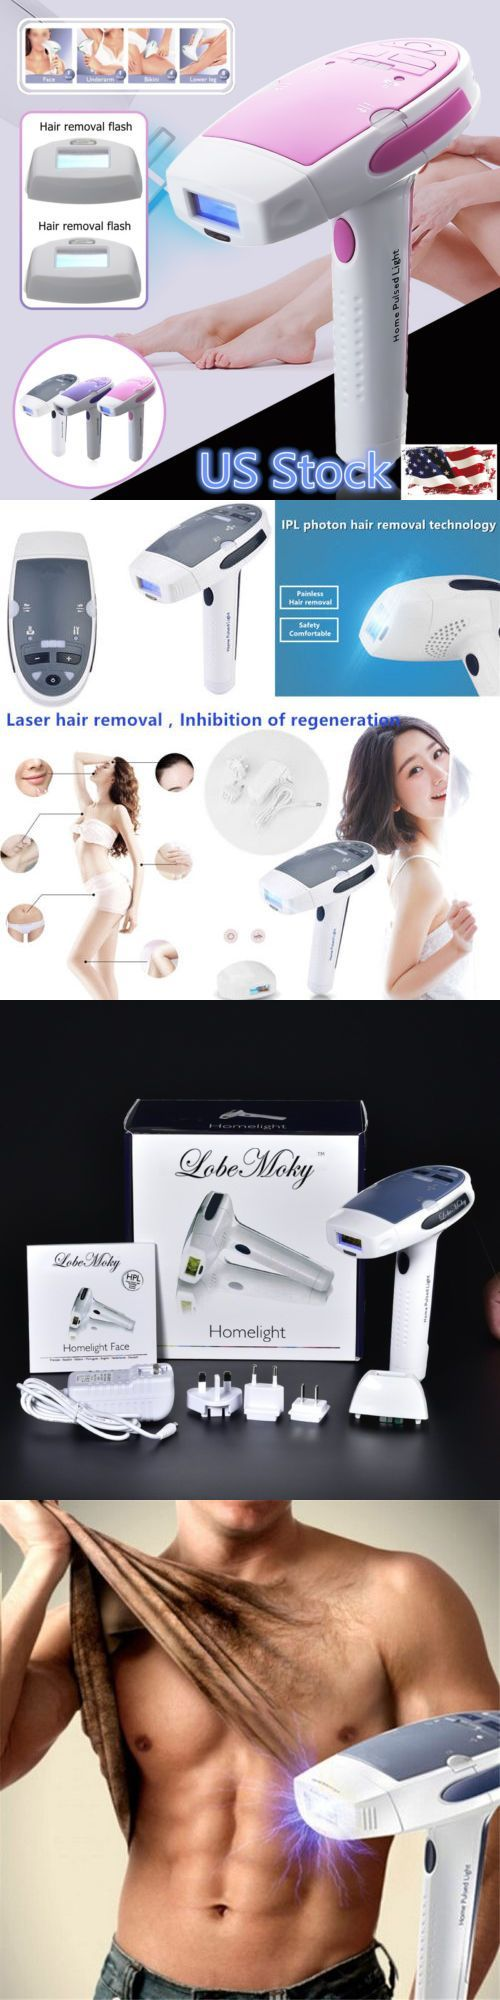 Epilators and Electrolysis: Us Women Rechargeable Laser Epilator Facial Body Hair Shaving Removal Depilator -> BUY IT NOW ONLY: $80.08 on eBay!